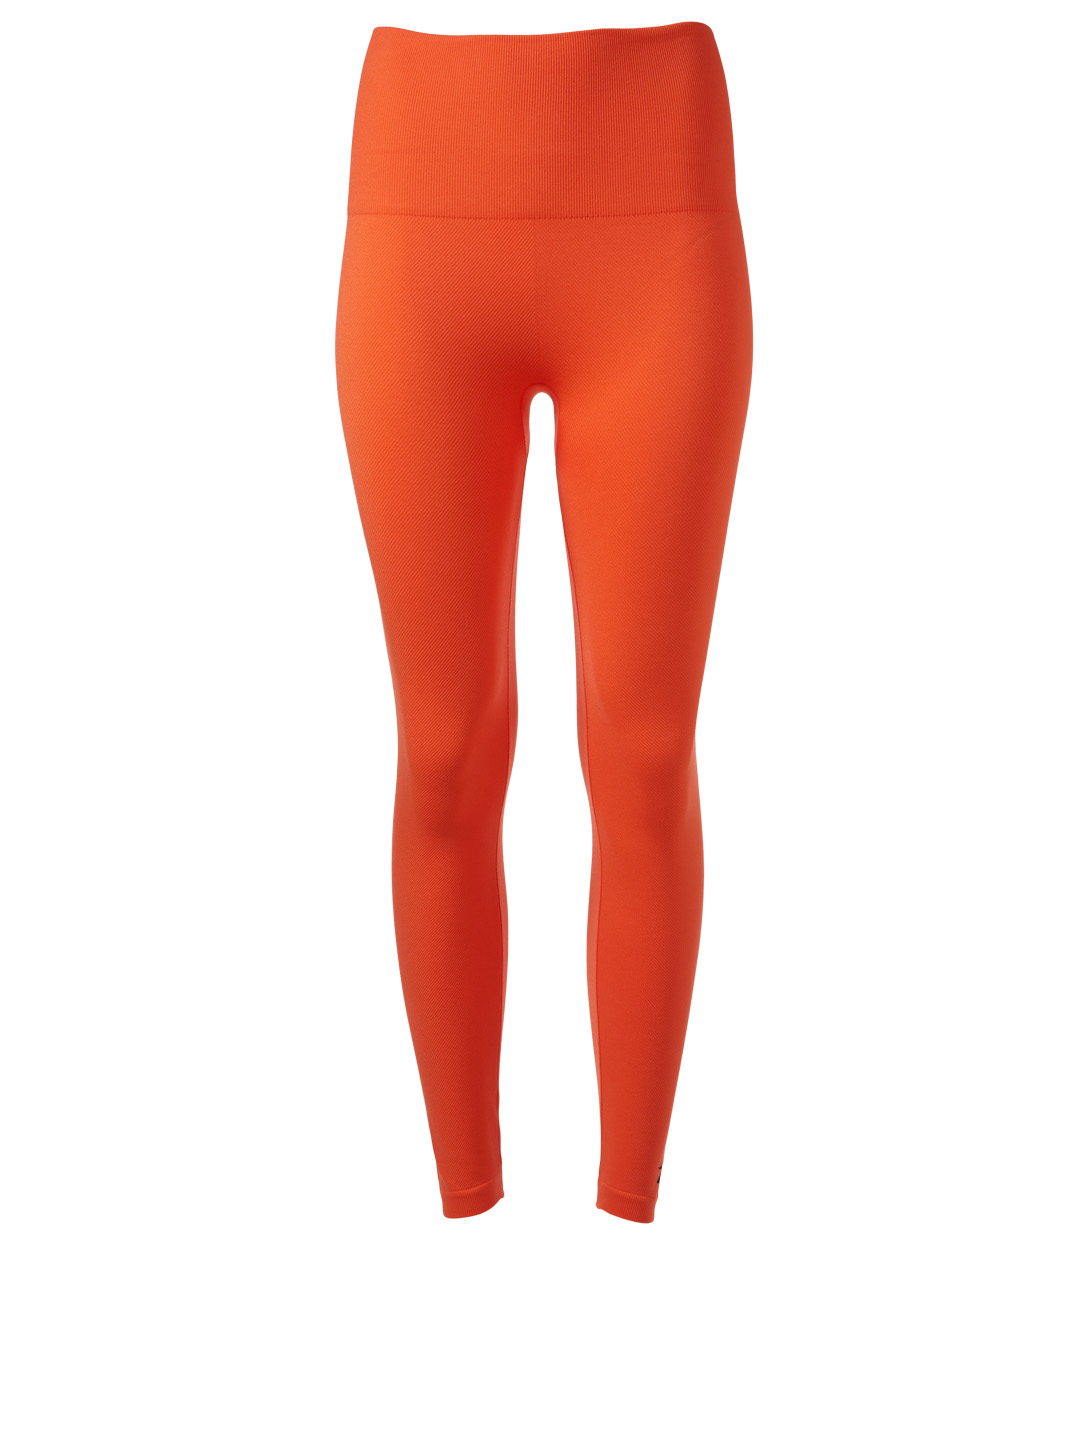 REEBOK X VICTORIA BECKHAM Seamless High-Waisted Leggings Women's Orange